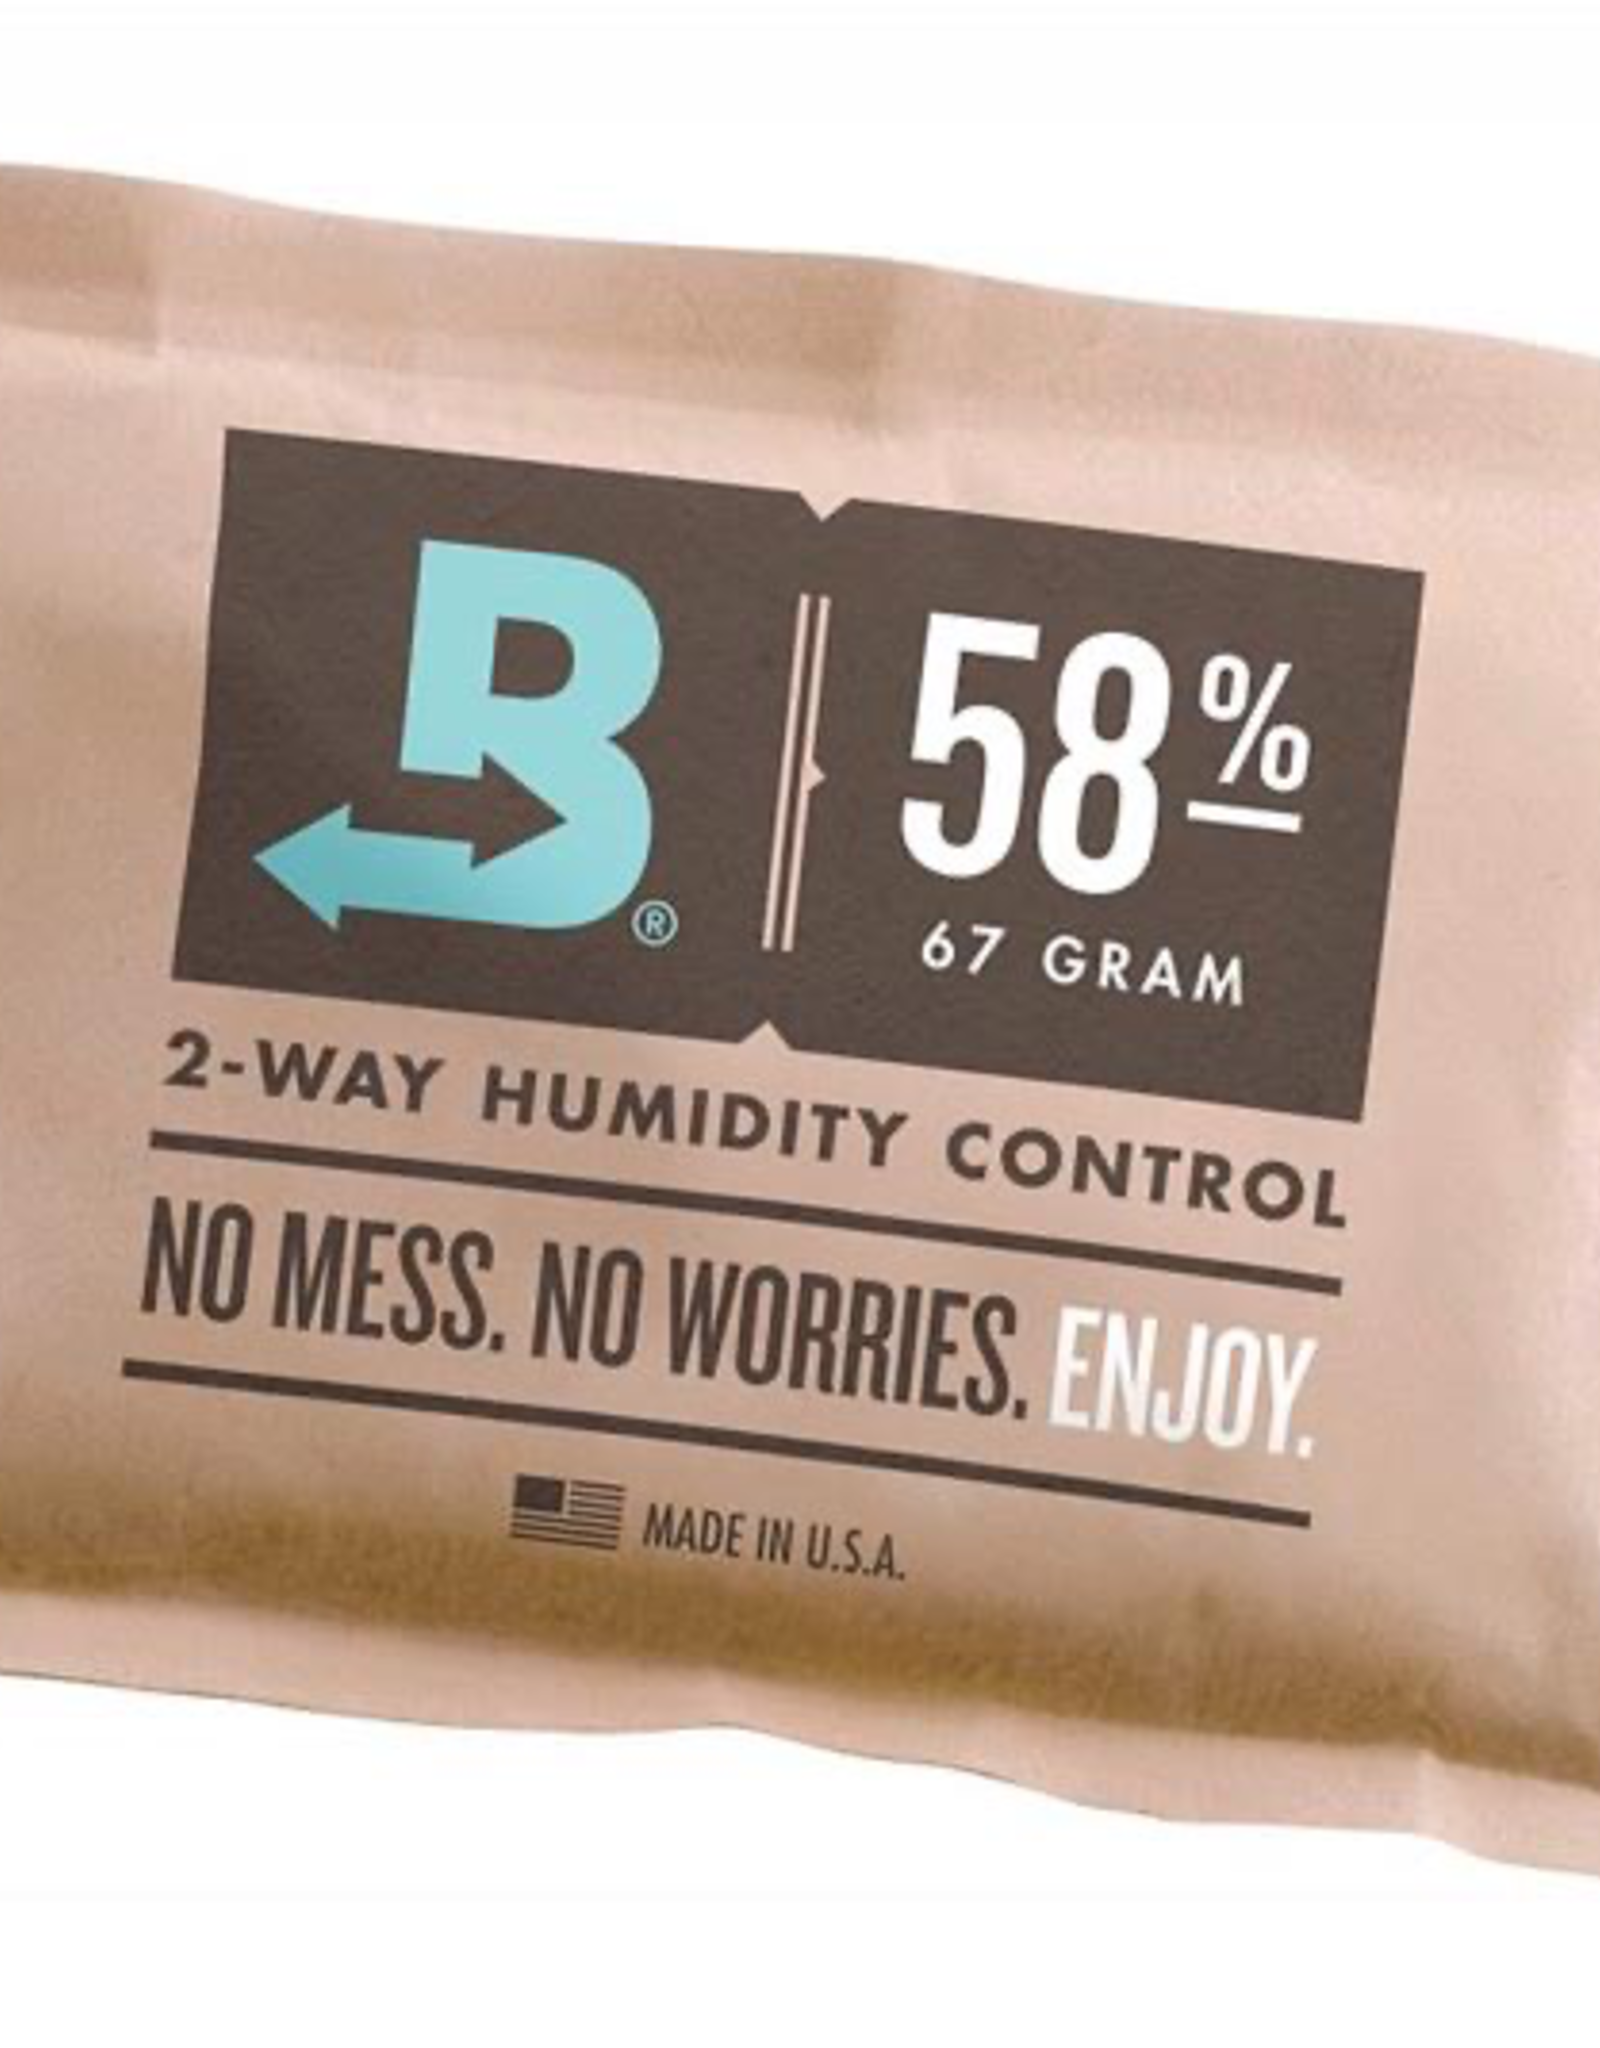 Boveda Boveda's patented 58% humidity control packs regulate moisture content, keeping the contents of your containers at the perfect desired level. They don't need any activation or maintenance. Just place them in an airtight container with your items and Boved